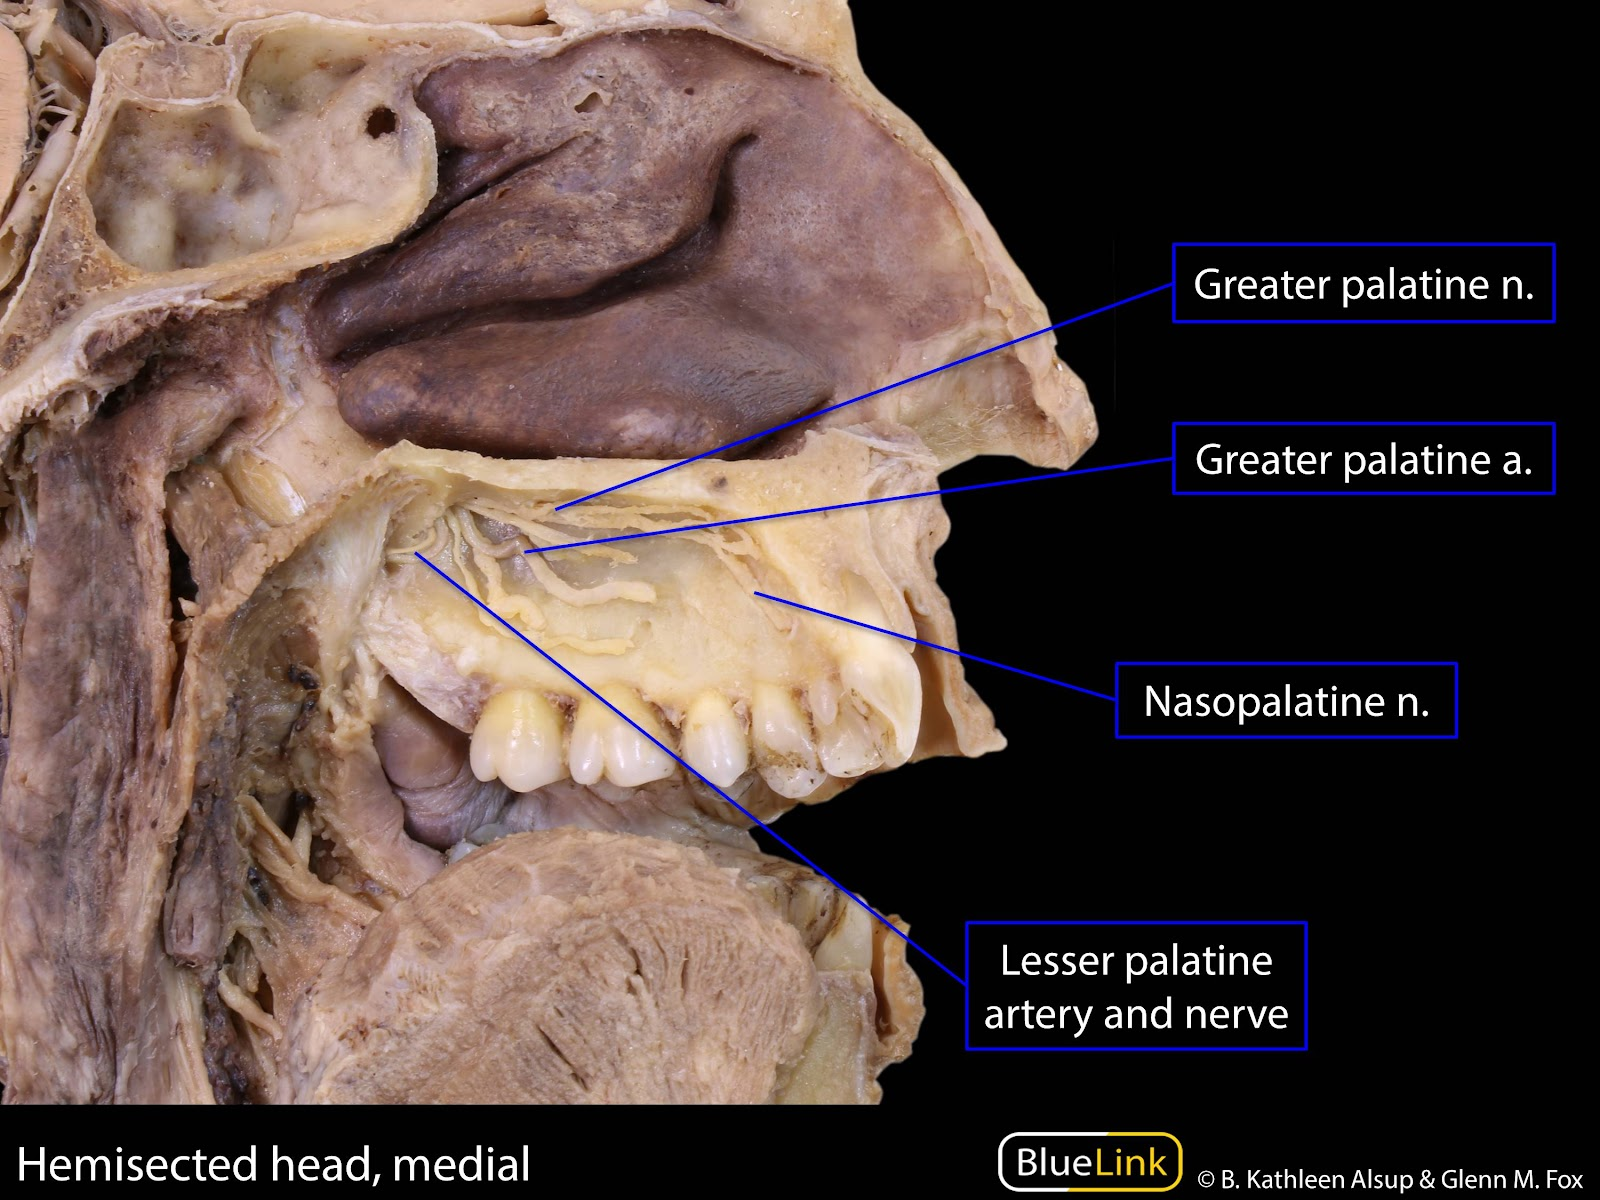 S12 Pterygopalatine Fossa and Palate - Learning Objectives - BlueLink